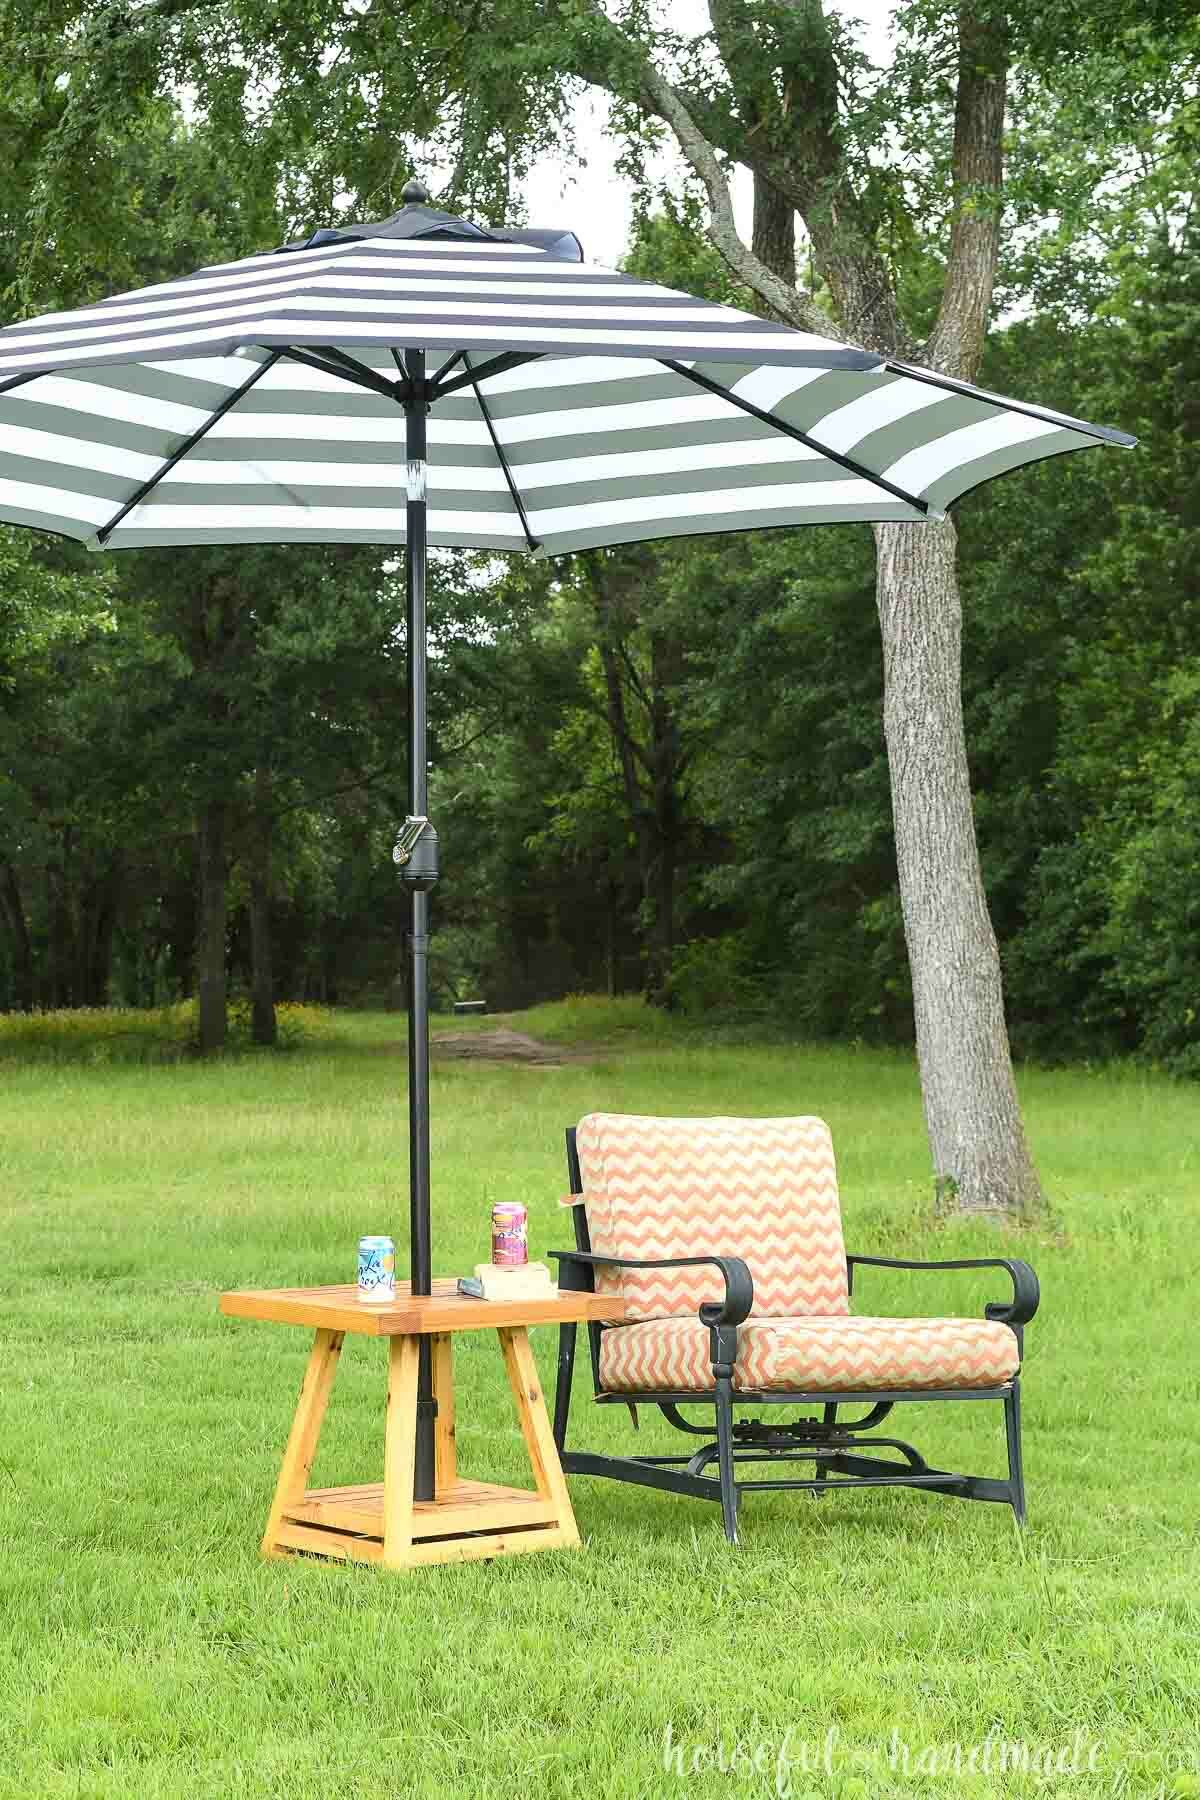 Small outdoor umbrella table next to chair on a lawn with trees in the background.